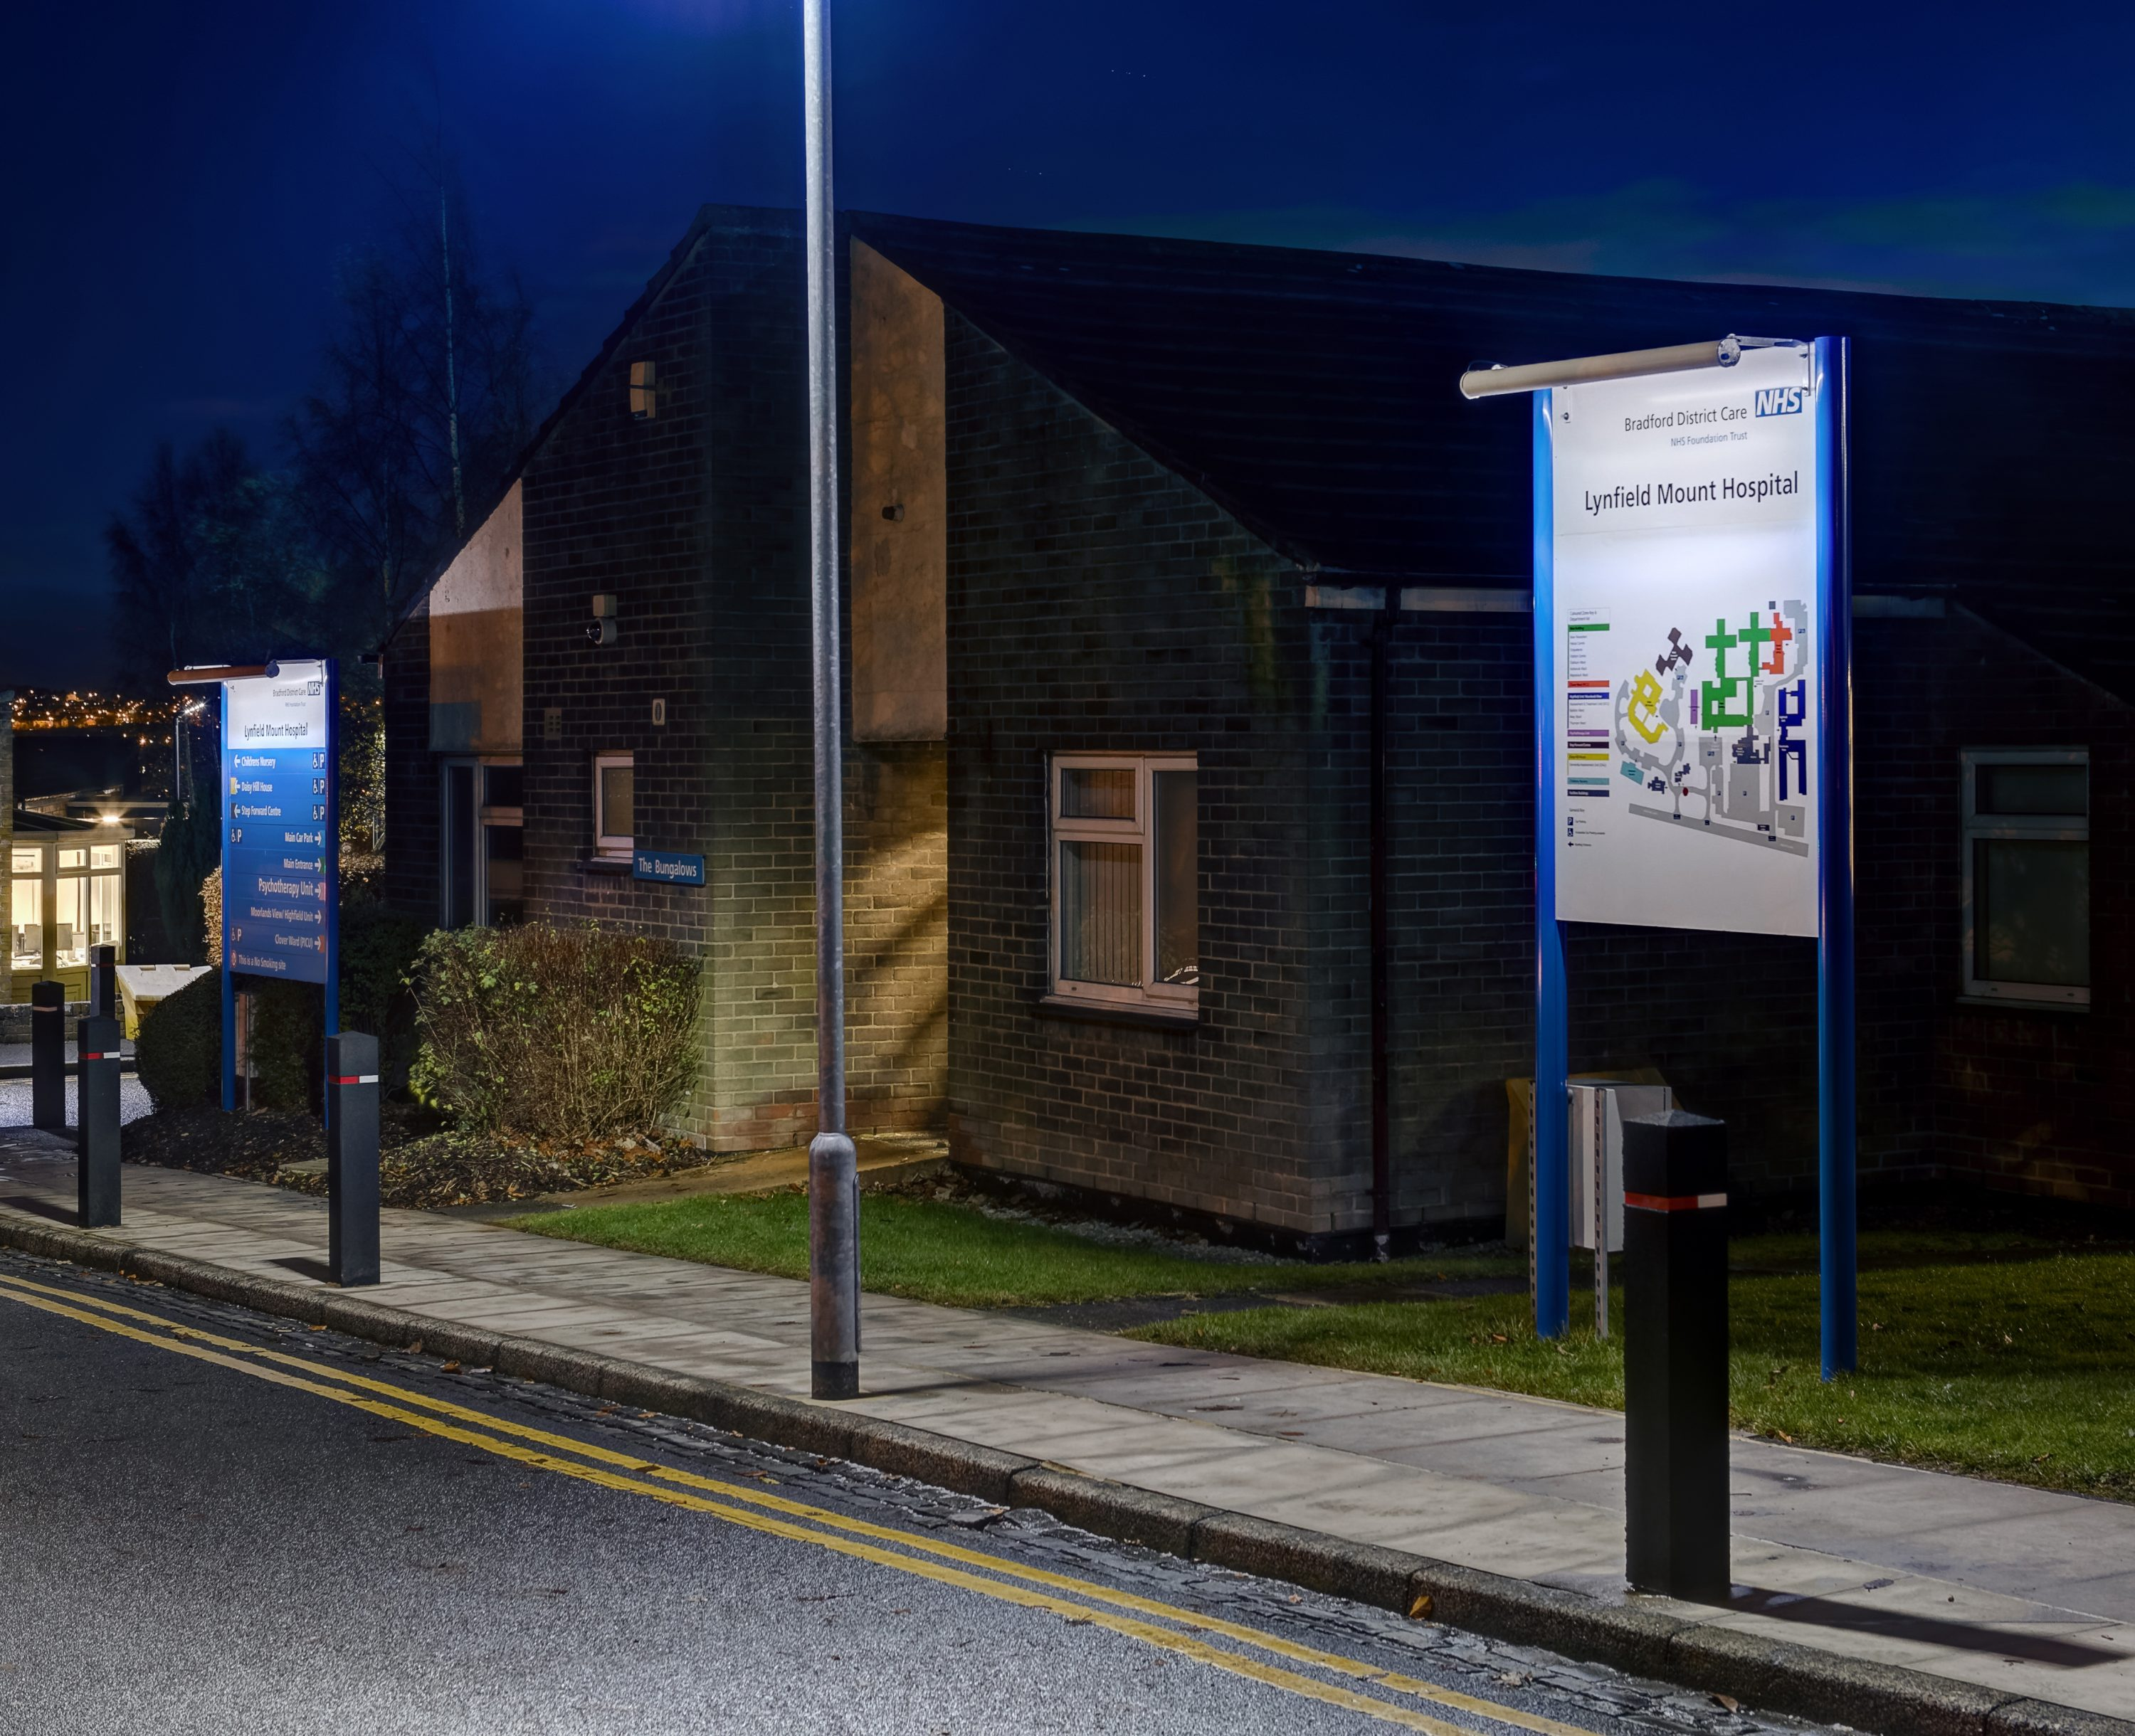 Zeta's ECOLUX SOLAR improves wayfinding at Lynfield Mount NHS Hospital